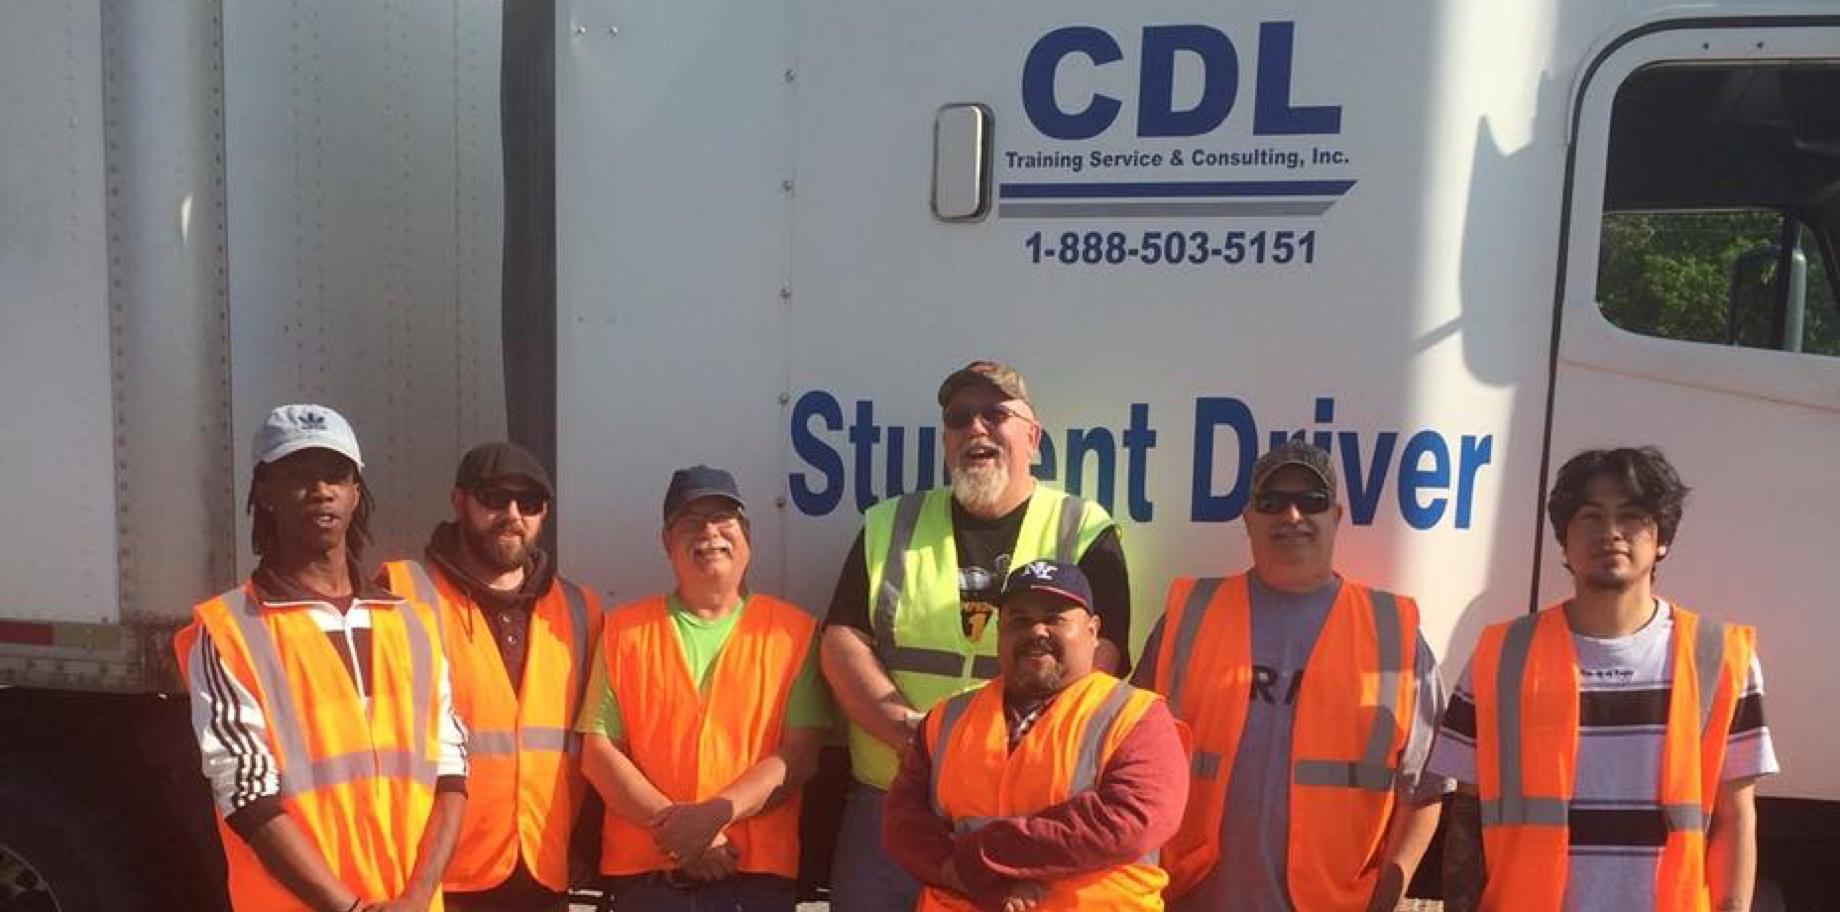 CDL training service hero